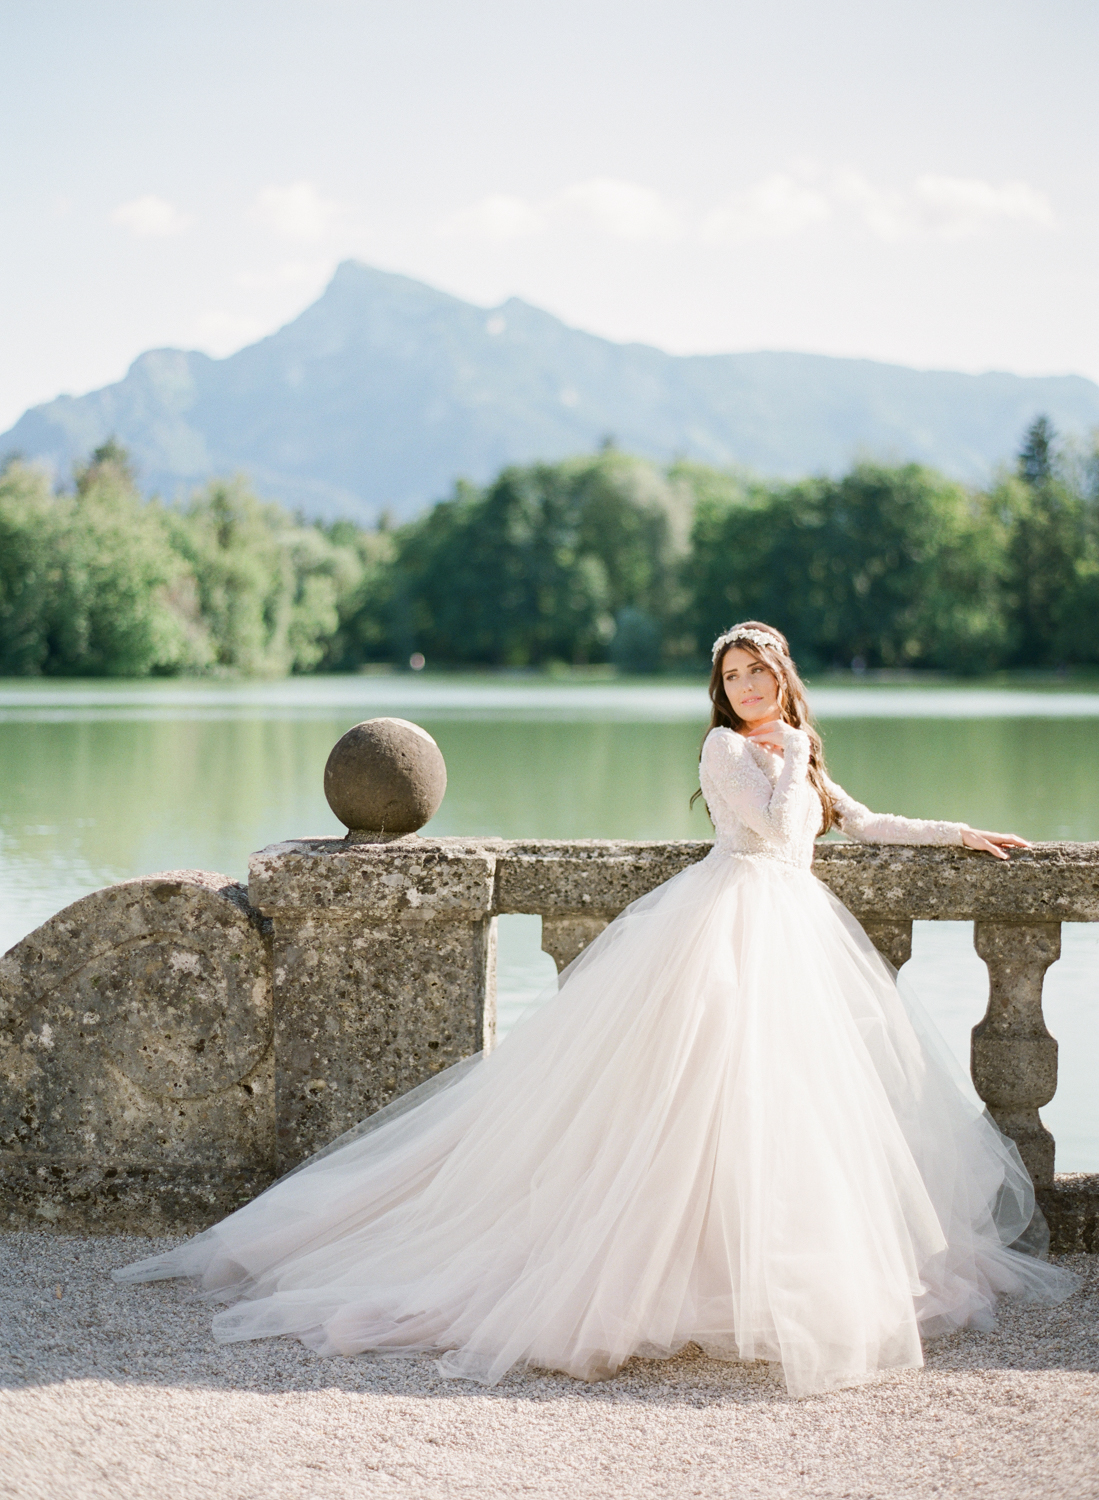 lake_como_wedding_photographer_nikol_bodnarova_207.JPG